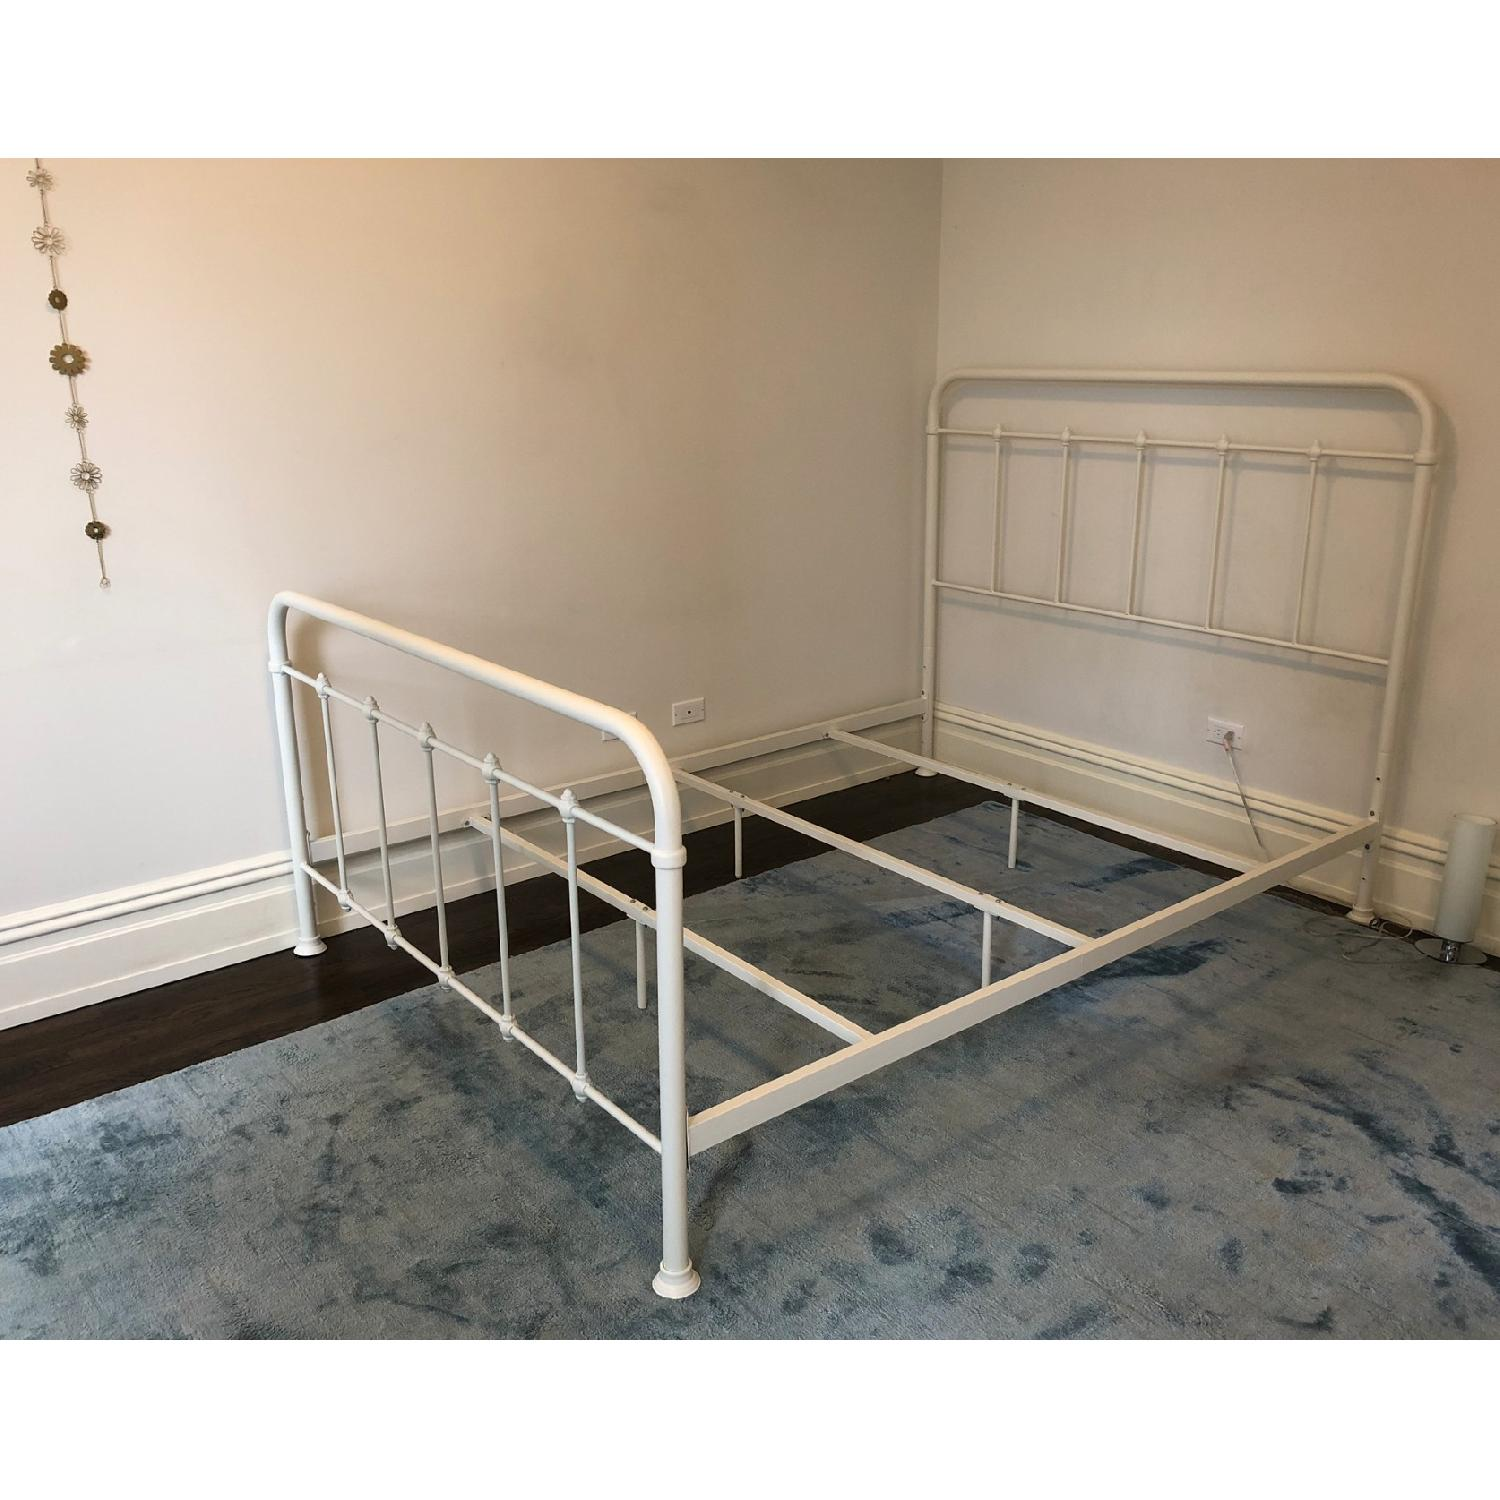 Shabby Chic Queen Metal Bed in Vintage White-4